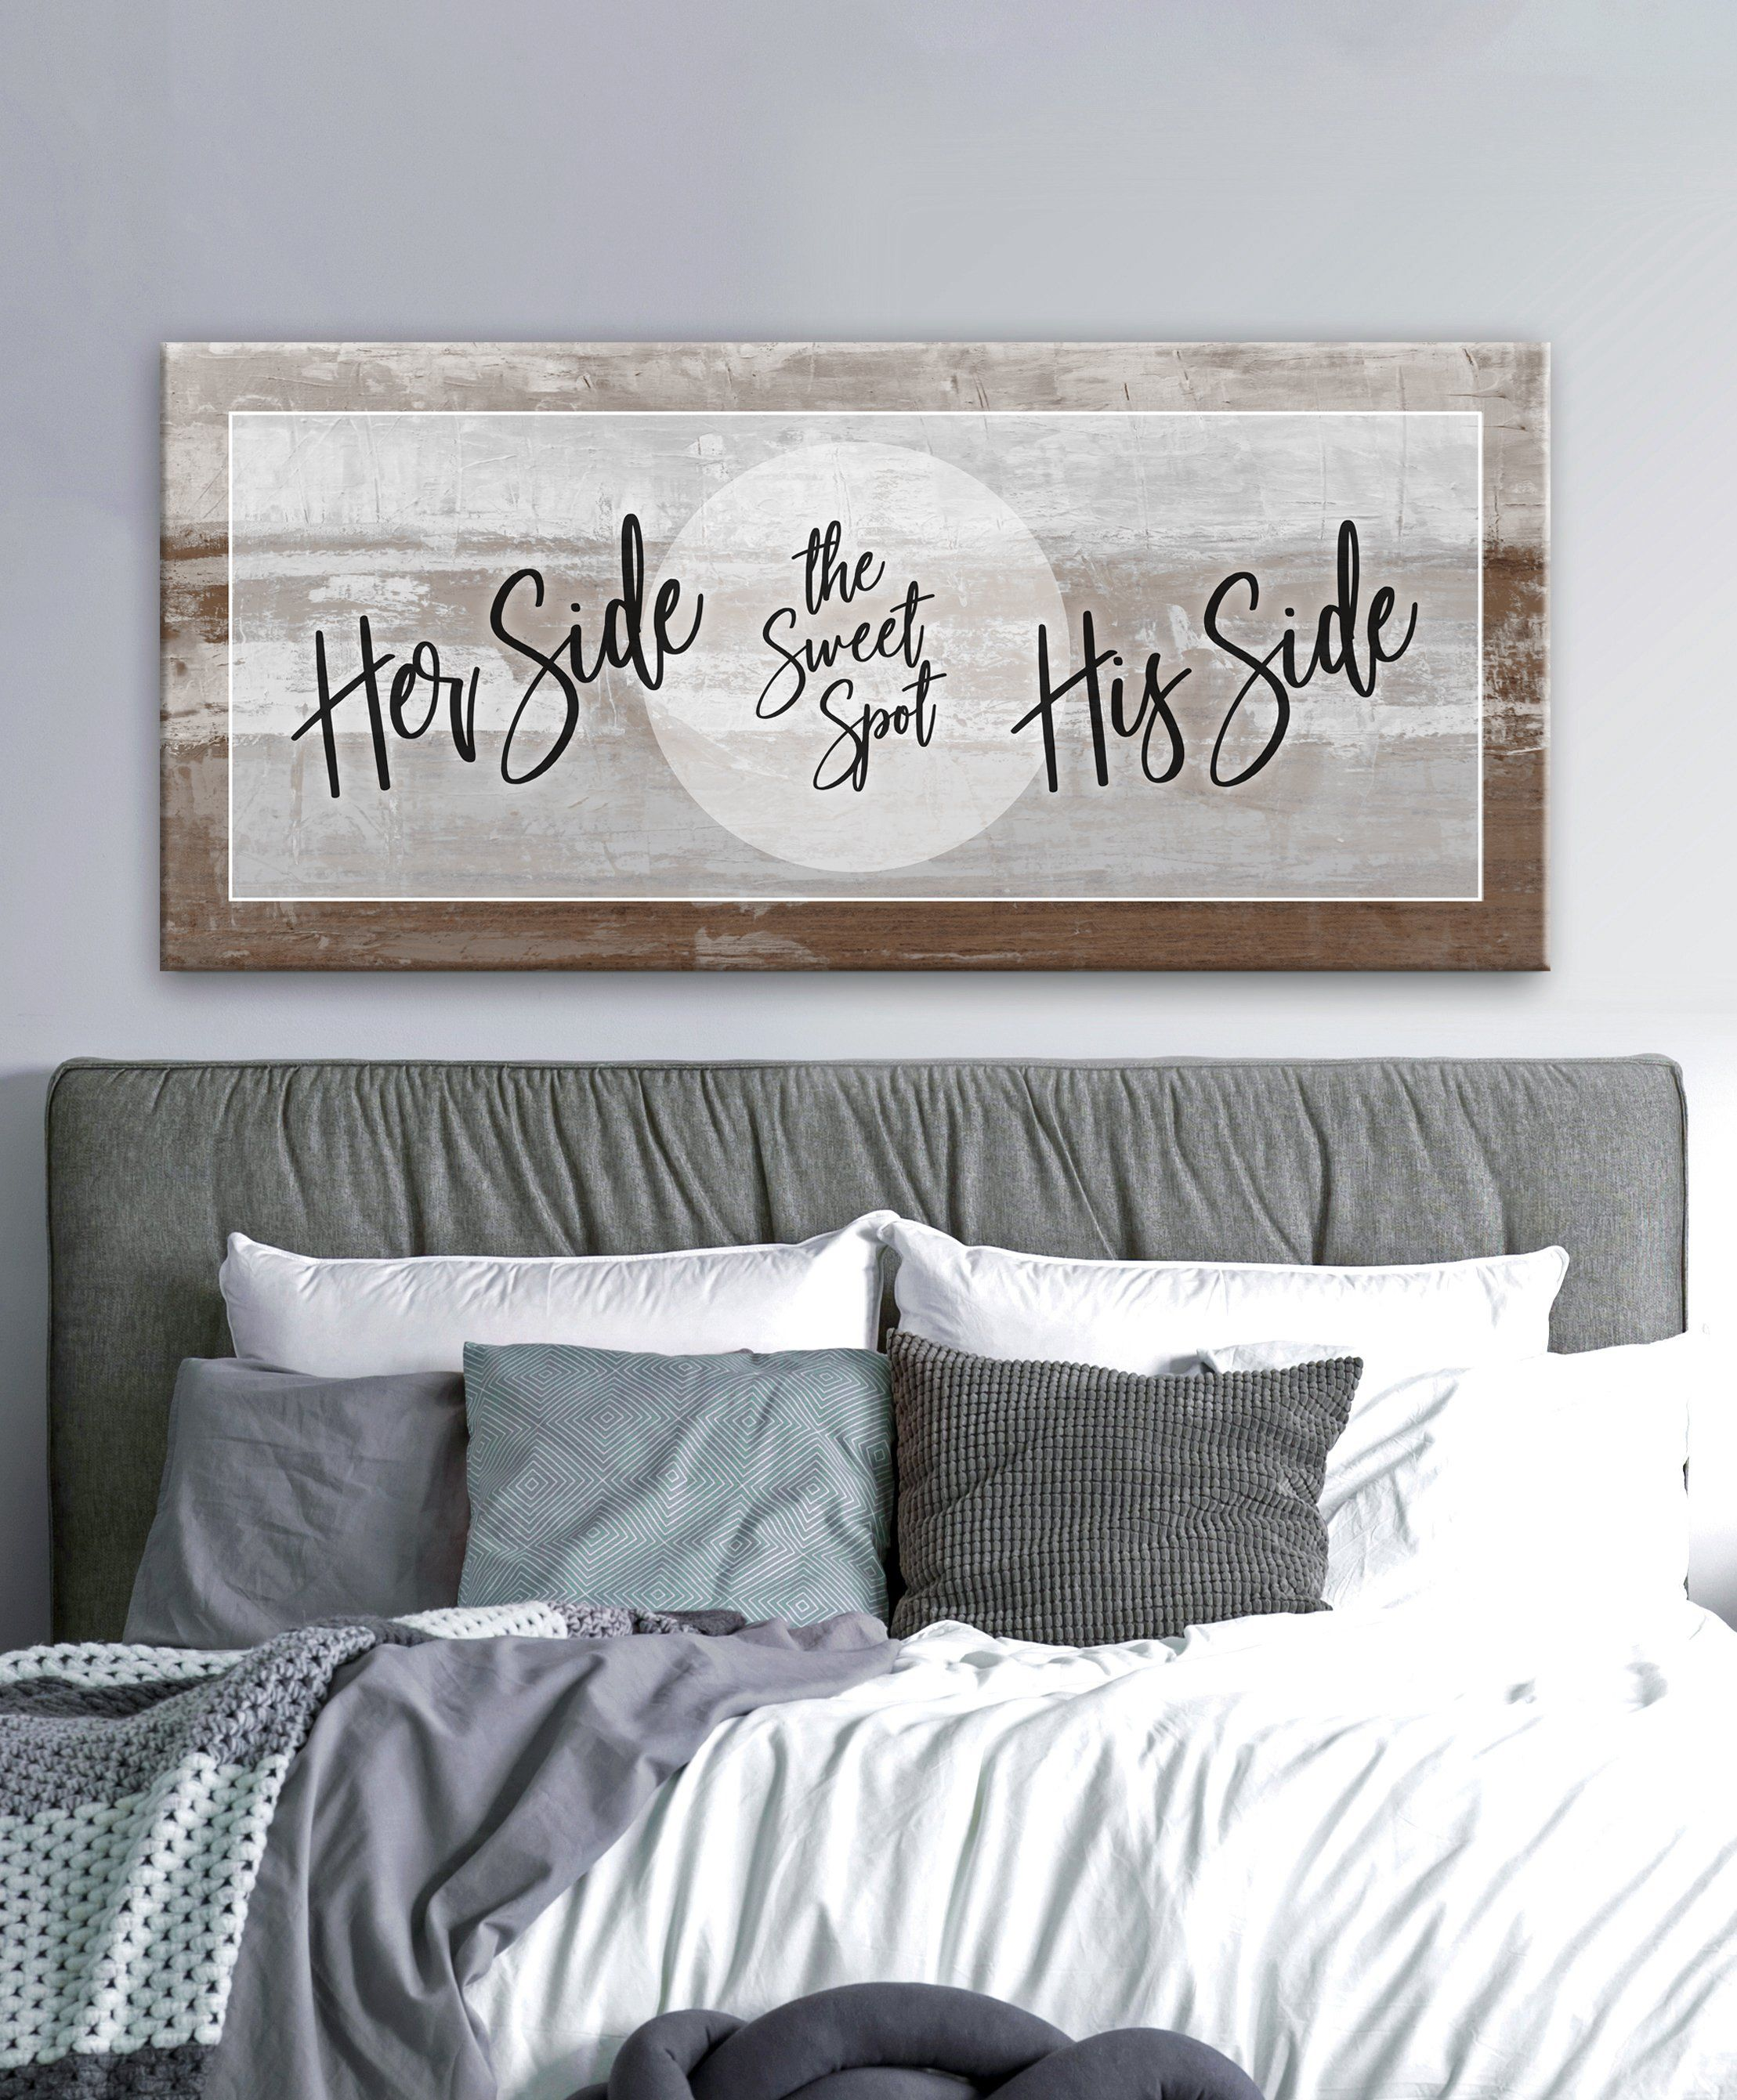 Couples Wall Art Her Side His Side Wood Frame Ready To Hang Bedroom Wall Decor Above Bed Headboard Decor Bedroom Decor For Couples